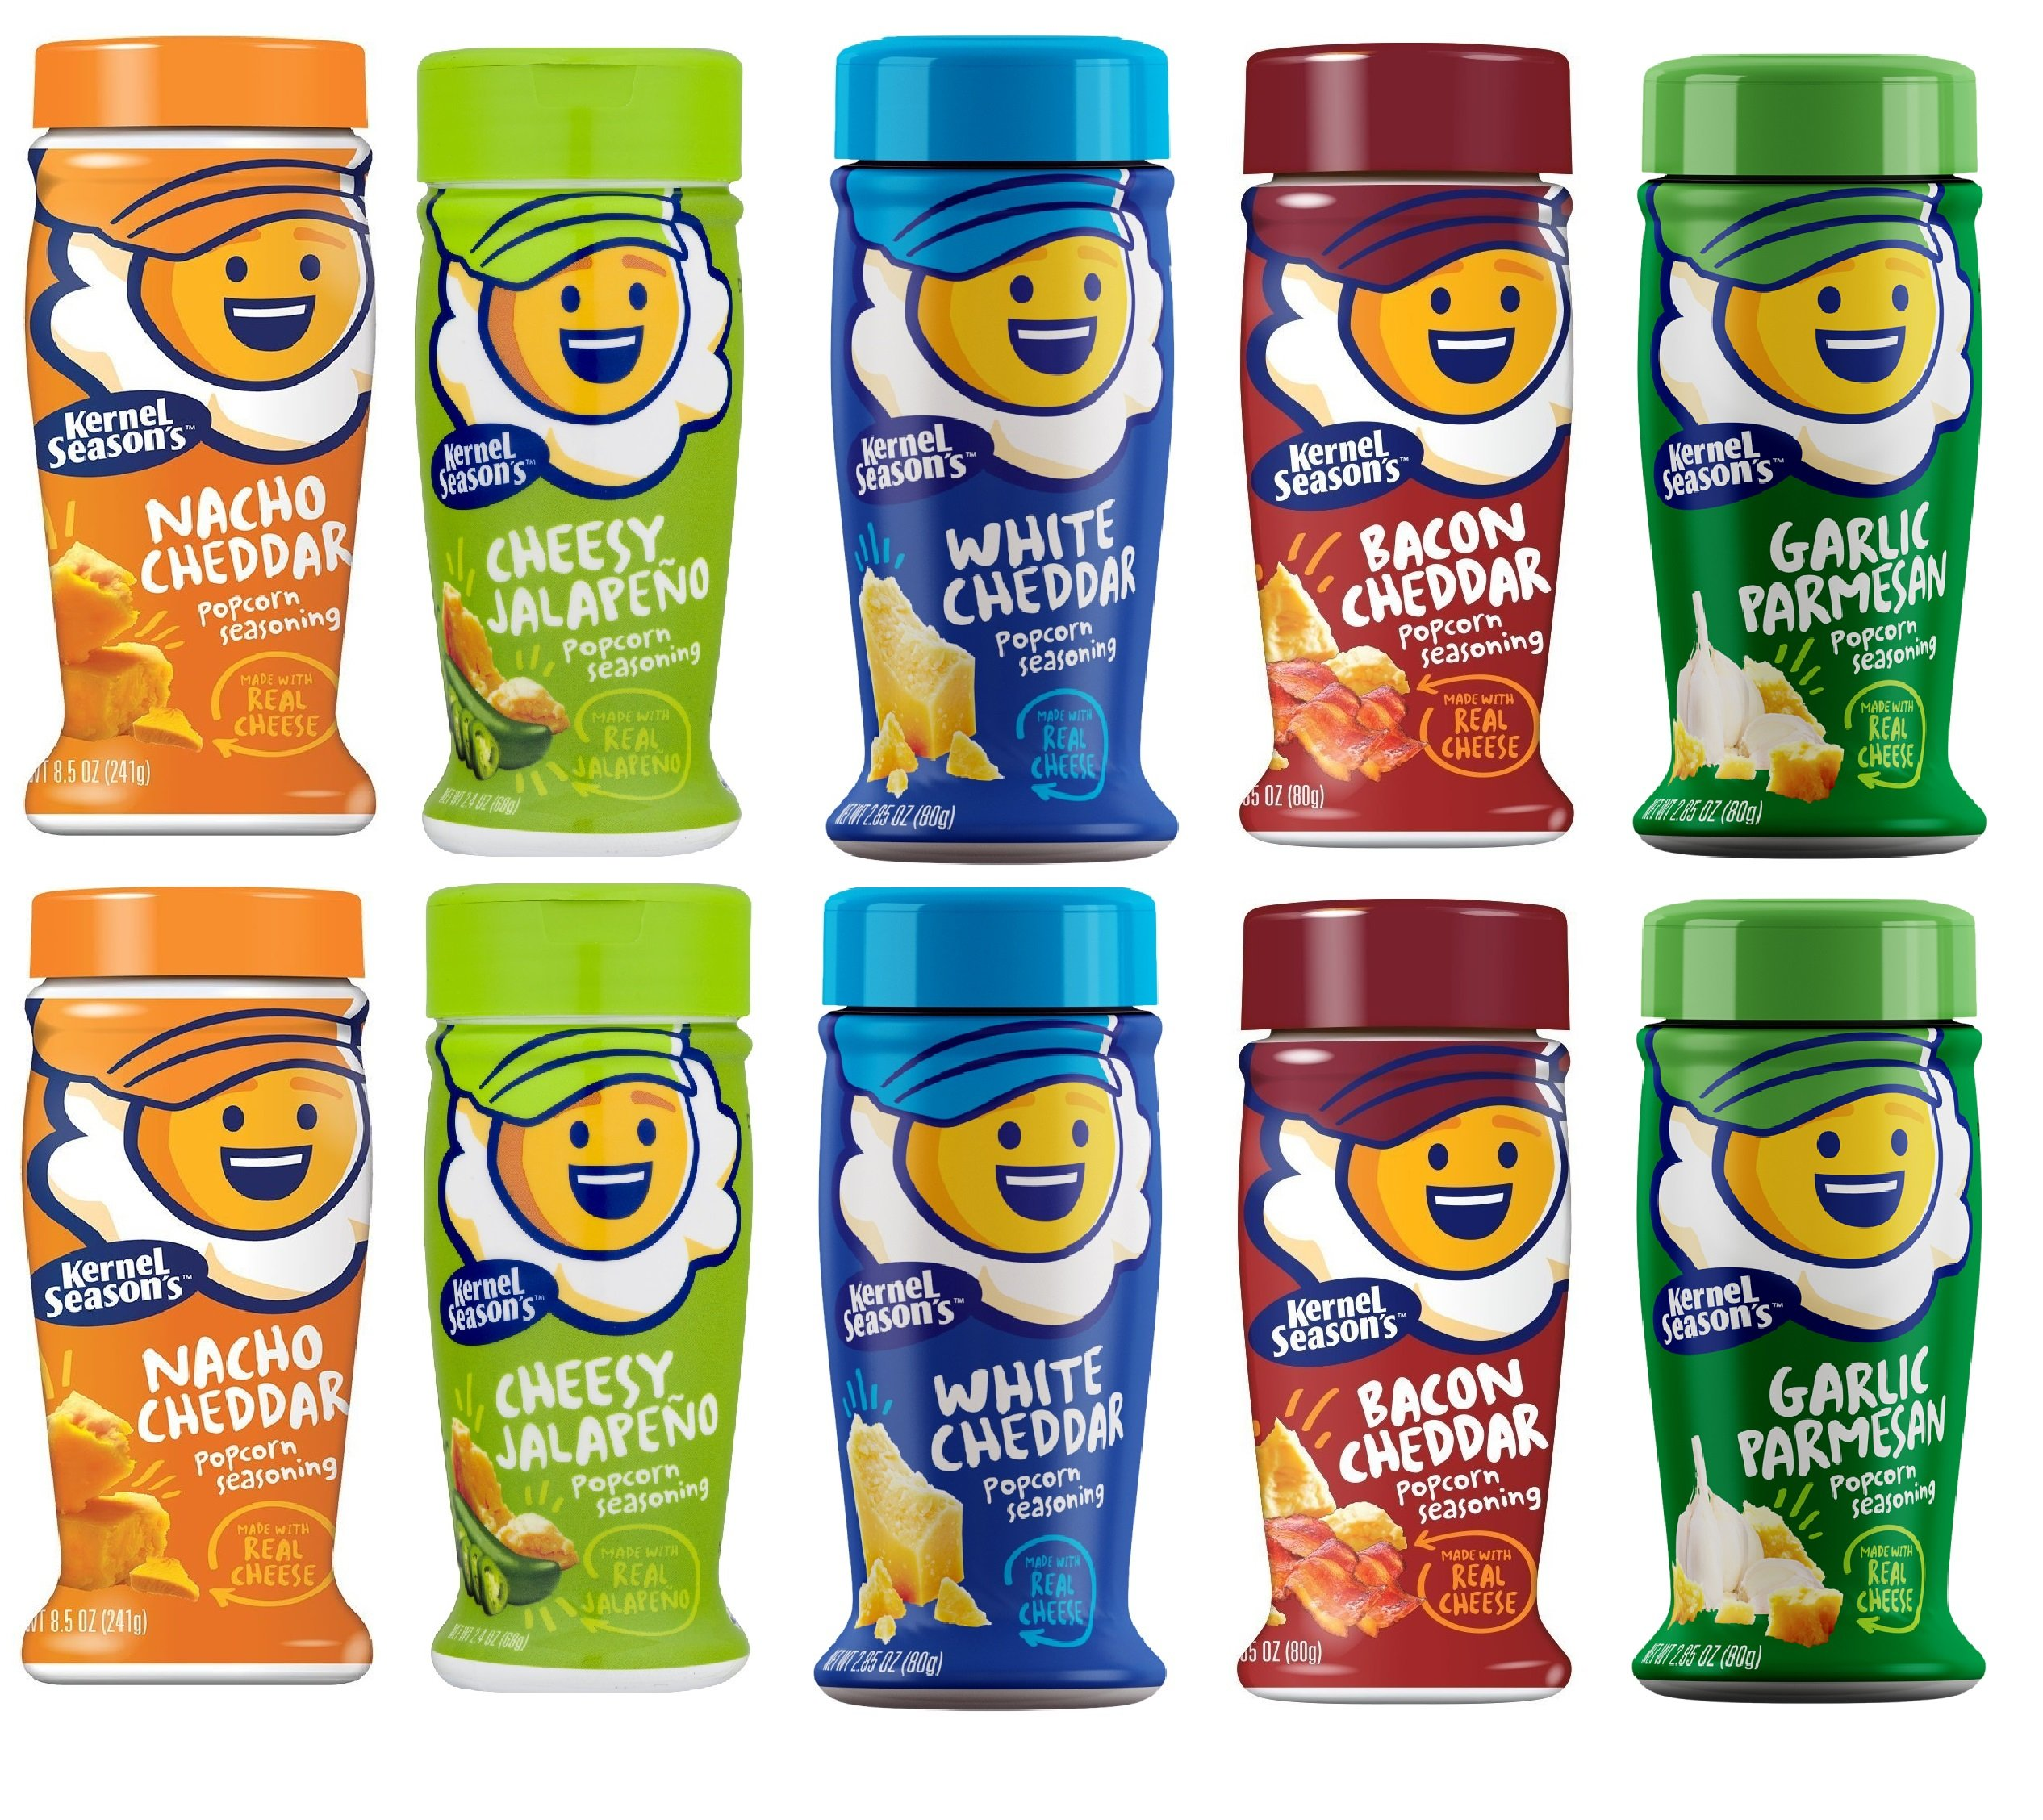 Kernel Seasons Popcorn Seasoning Kit CHEESE LOVERS Complete Set Variety Pack of All 5 Cheesy Flavors (VALUE 2-PACK)